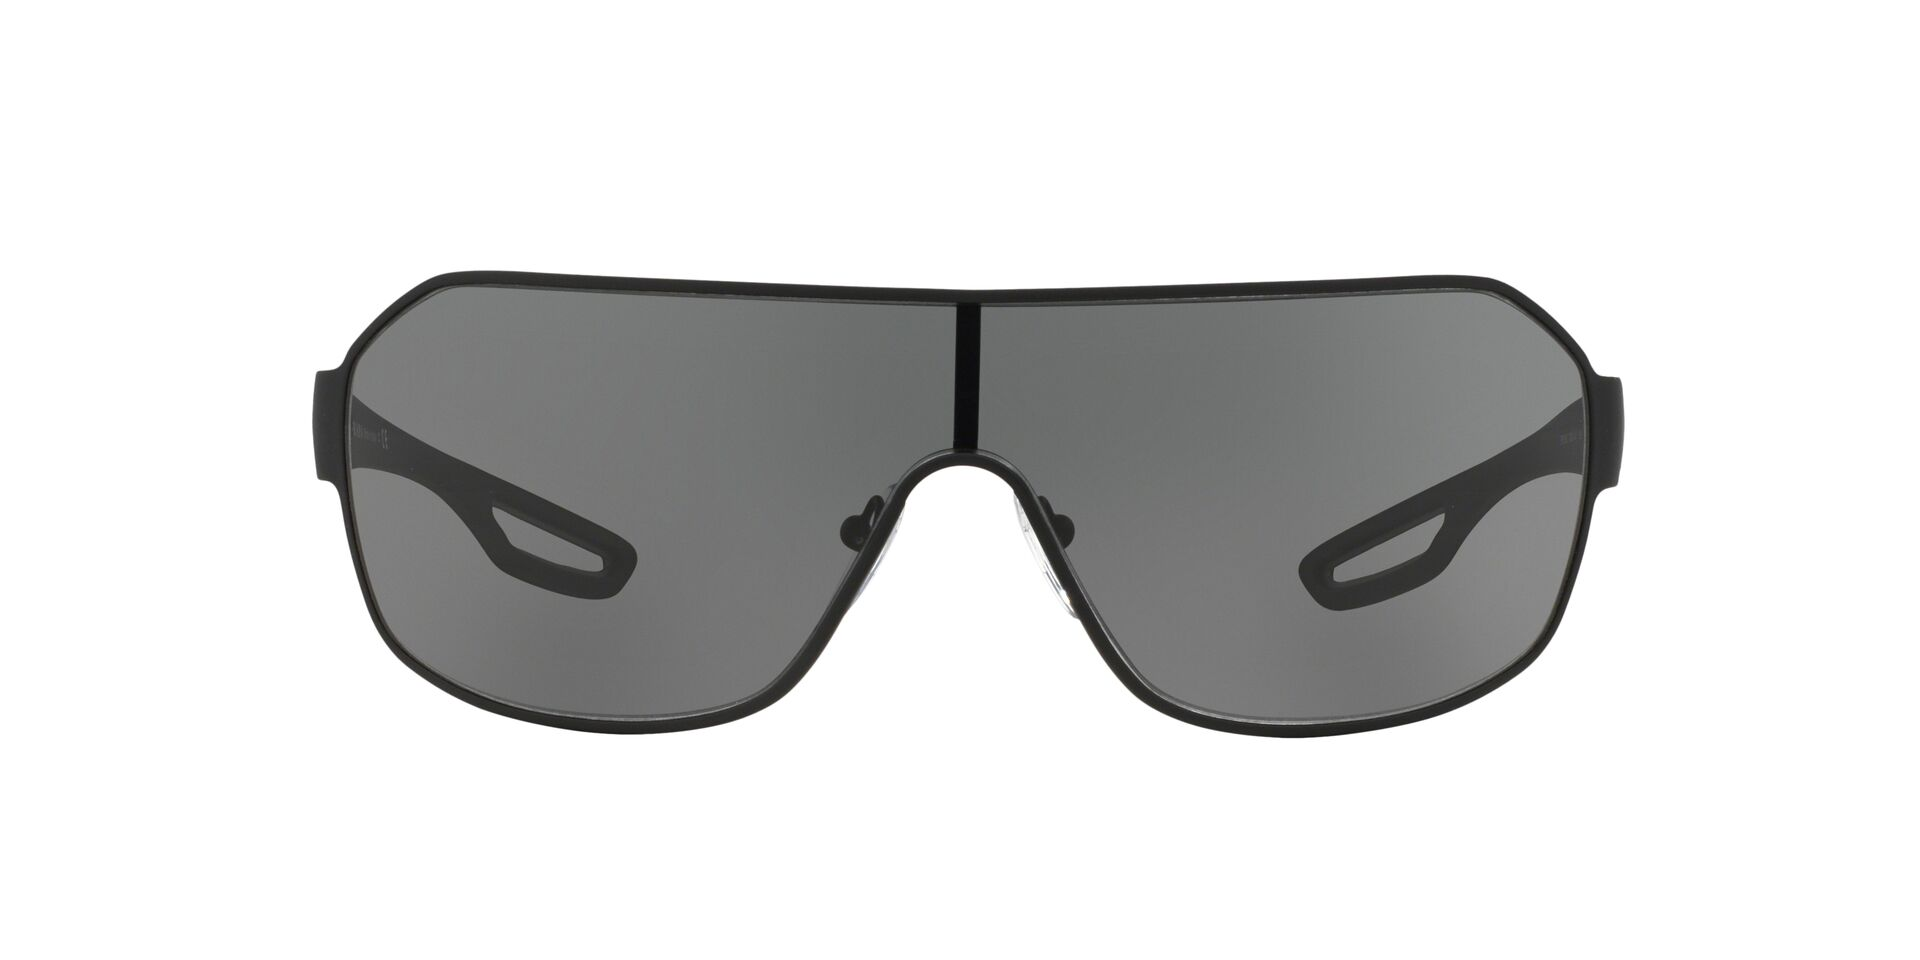 Prada Sport - SPS52Q Black Shield Men Sunglasses - 130mm-Sunglasses-Designer Eyes